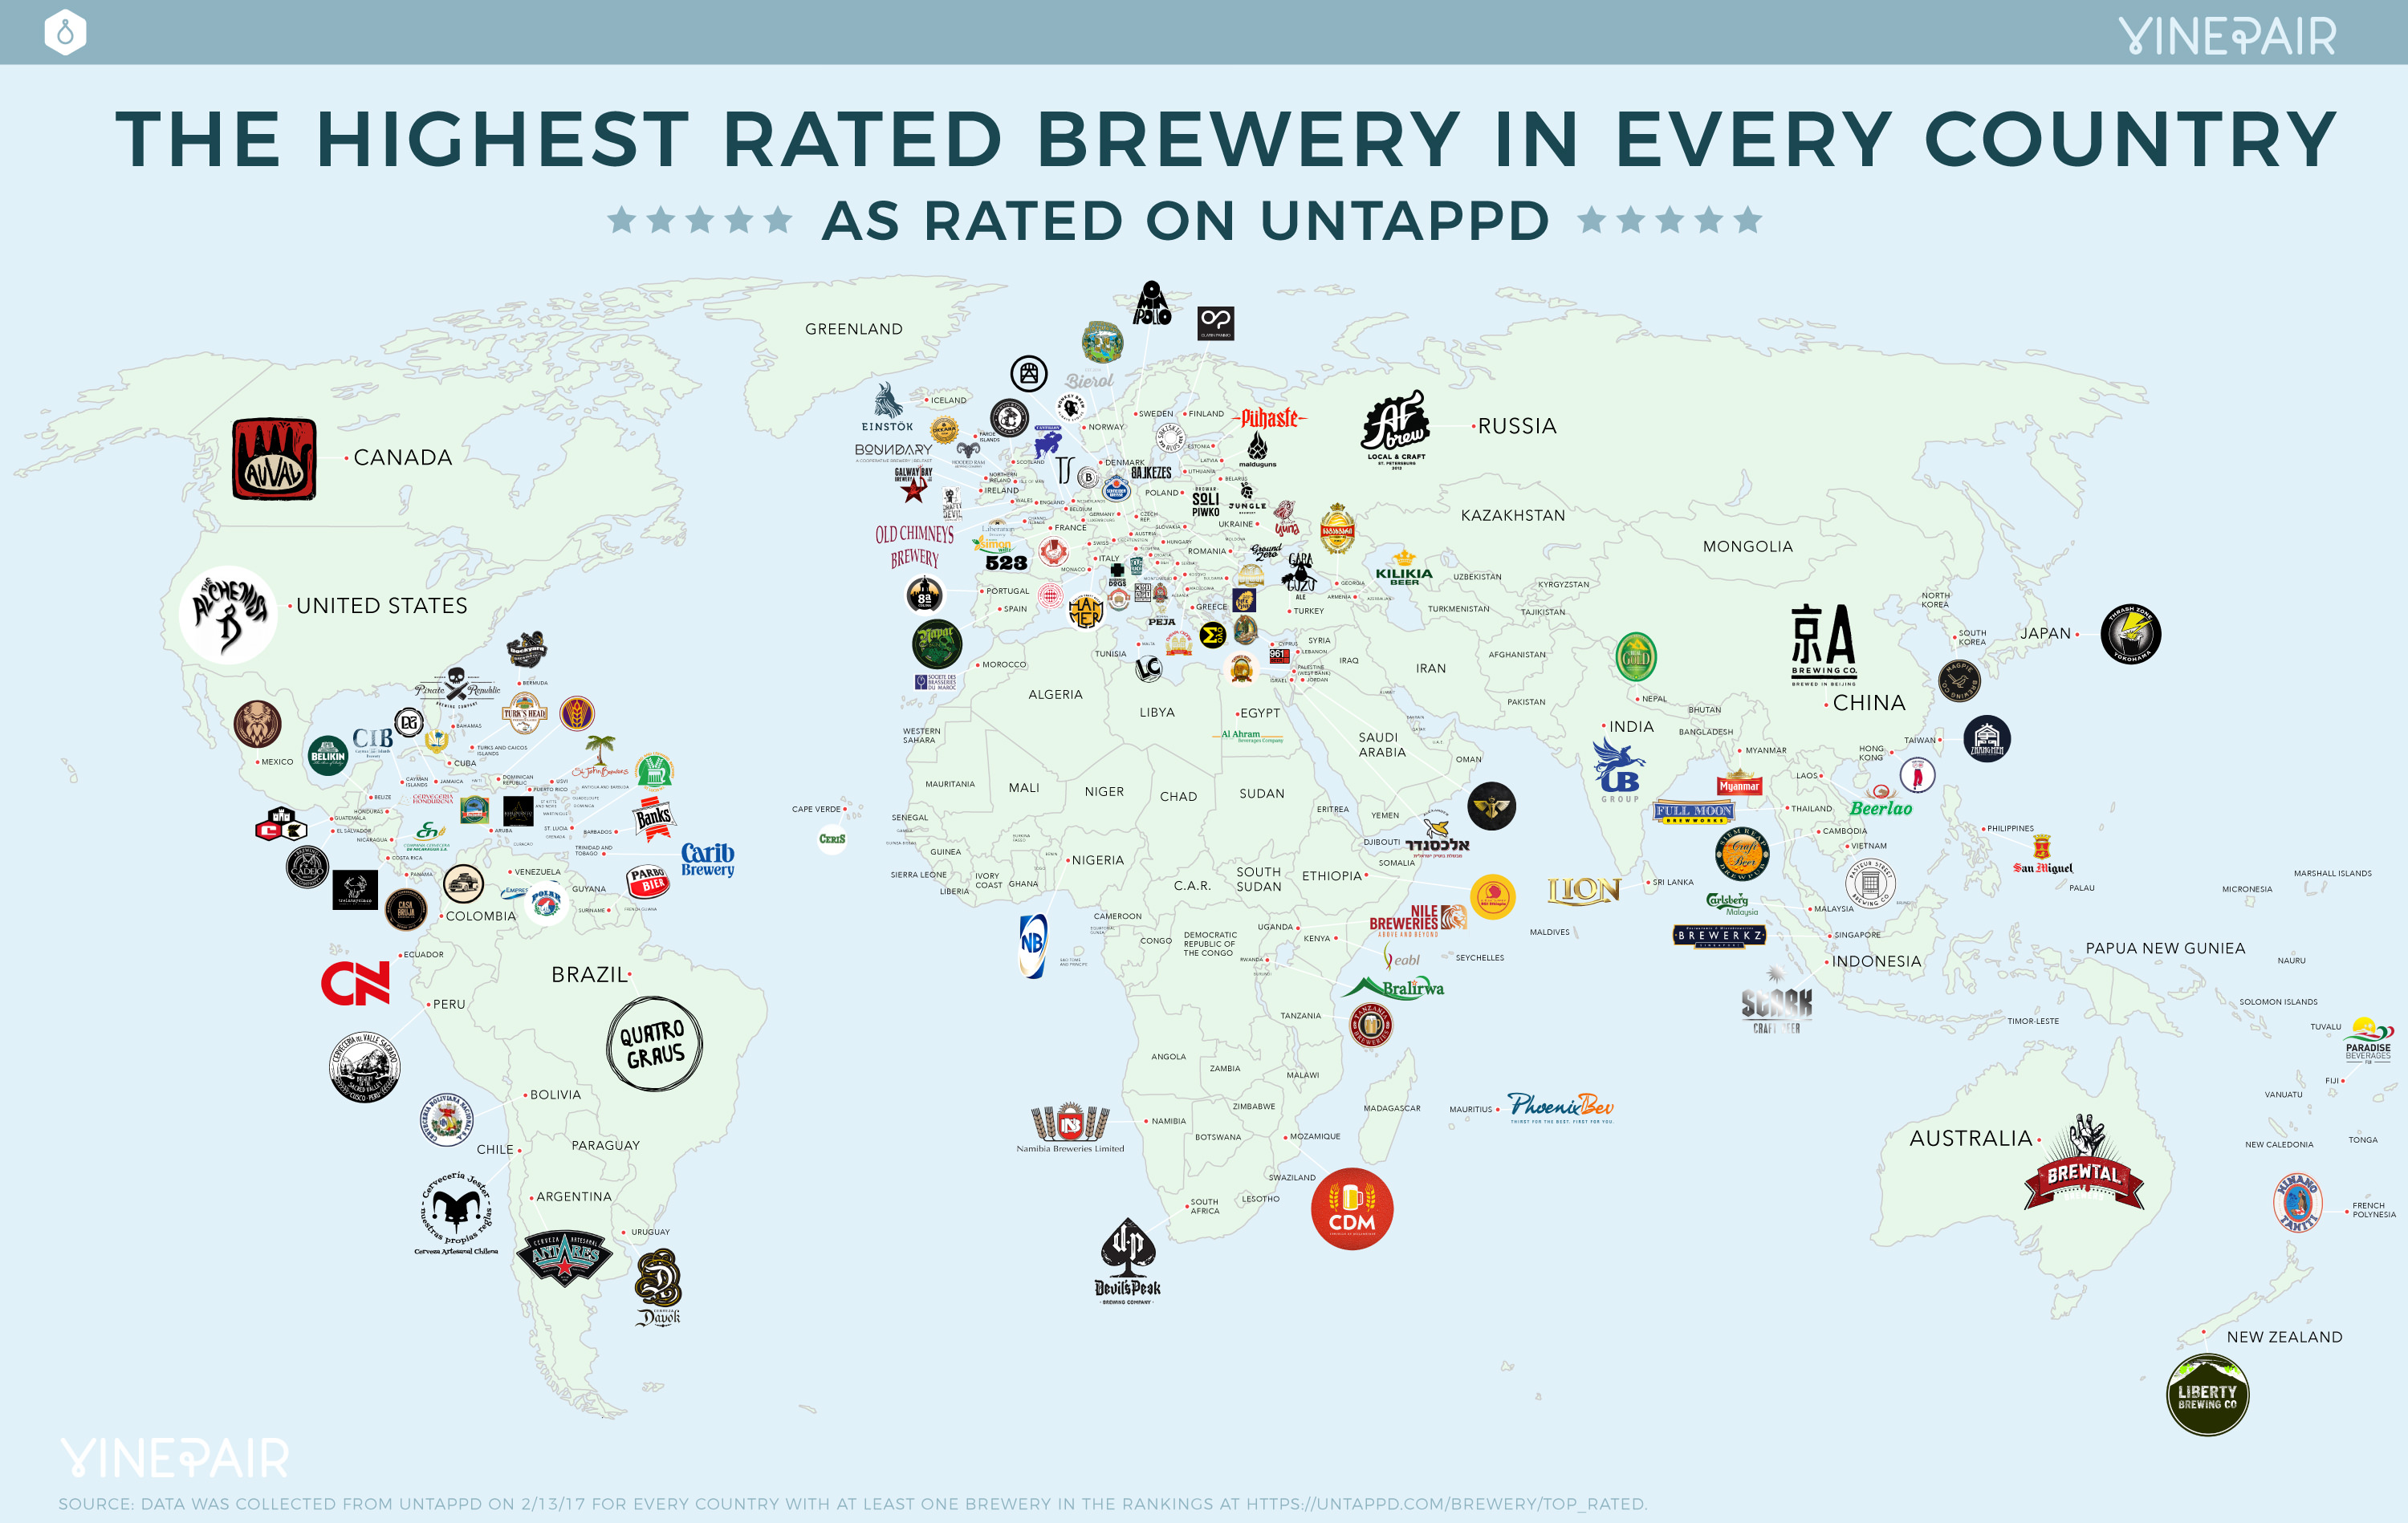 images/stories/2016/News/map-top-rated-breweries-world-2017.jpg